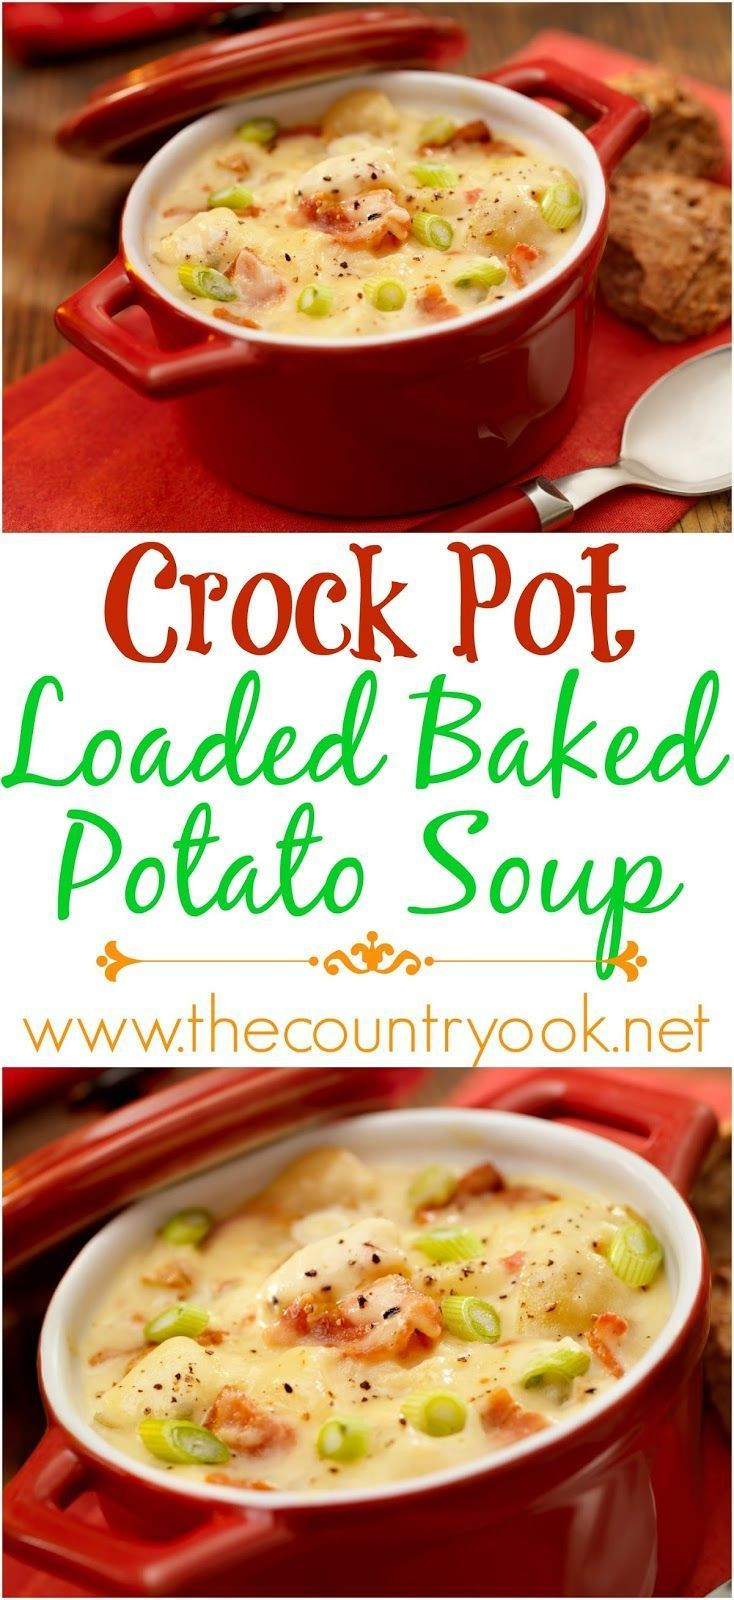 Healthy Loaded Baked Potato Soup  Crock Pot Loaded Baked Potato Soup recipe from The Country